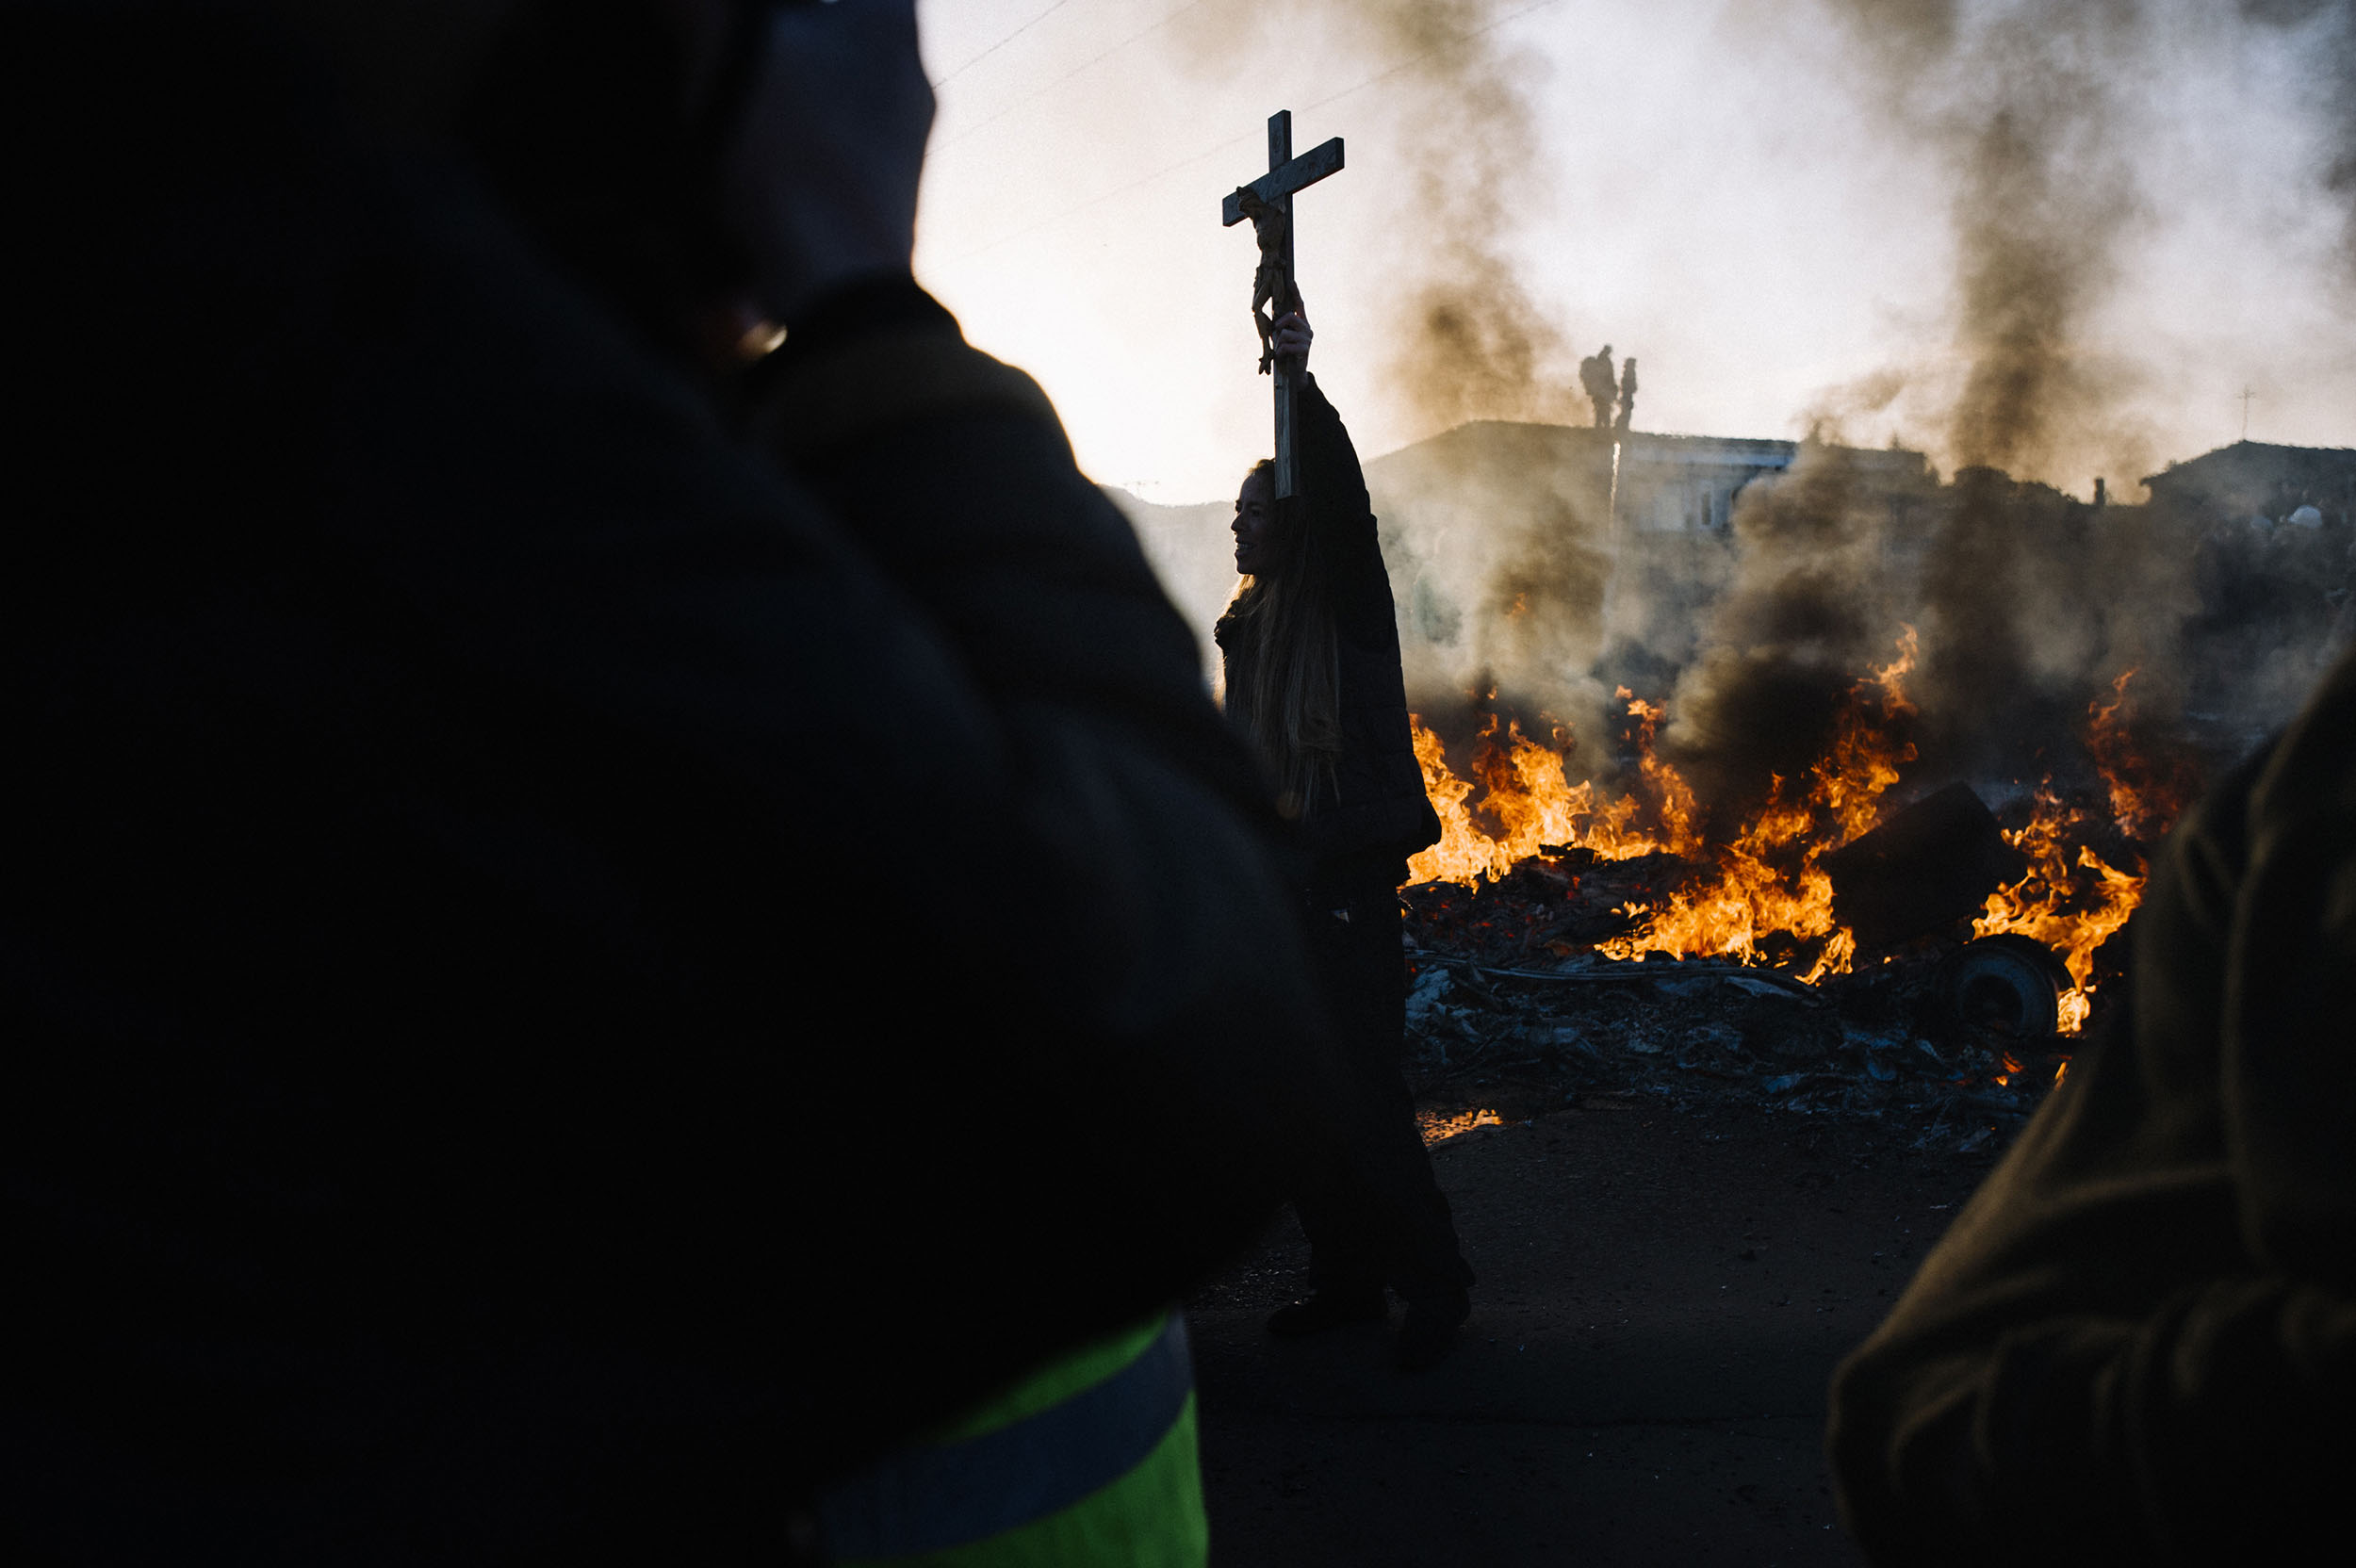 Activists and Gypsies hold crucifixes in the air, as caravans burn.